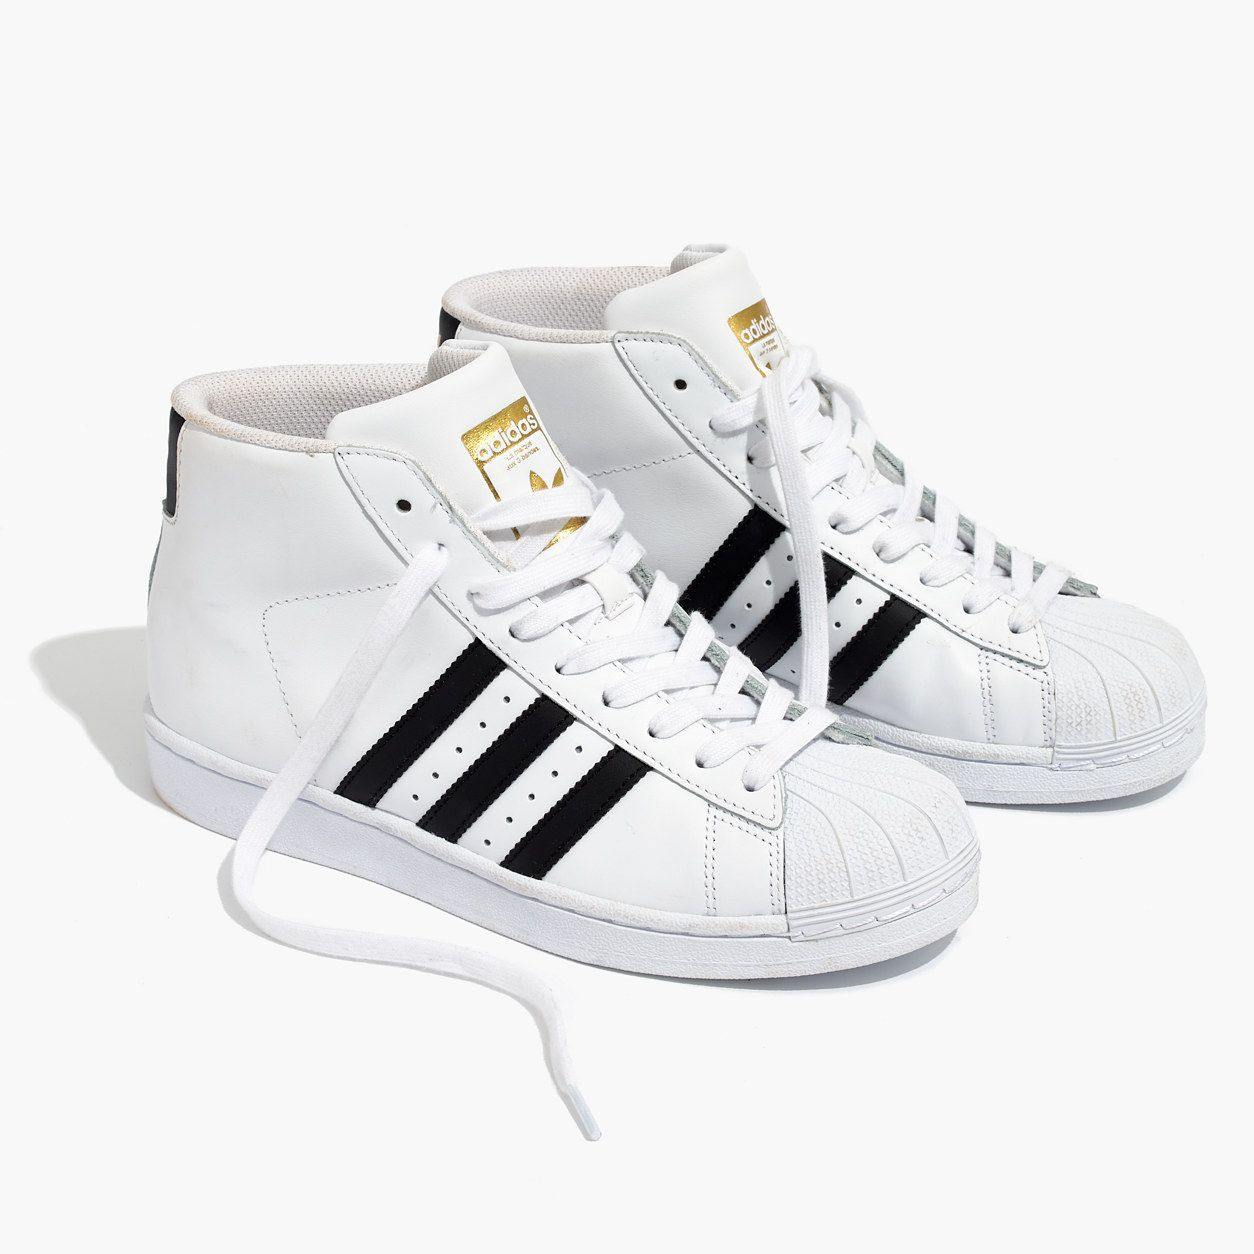 7de0e62bc903 Madewell Womens Adidas Superstar Pro Model High-Top Sneakers (Size 8.5 M